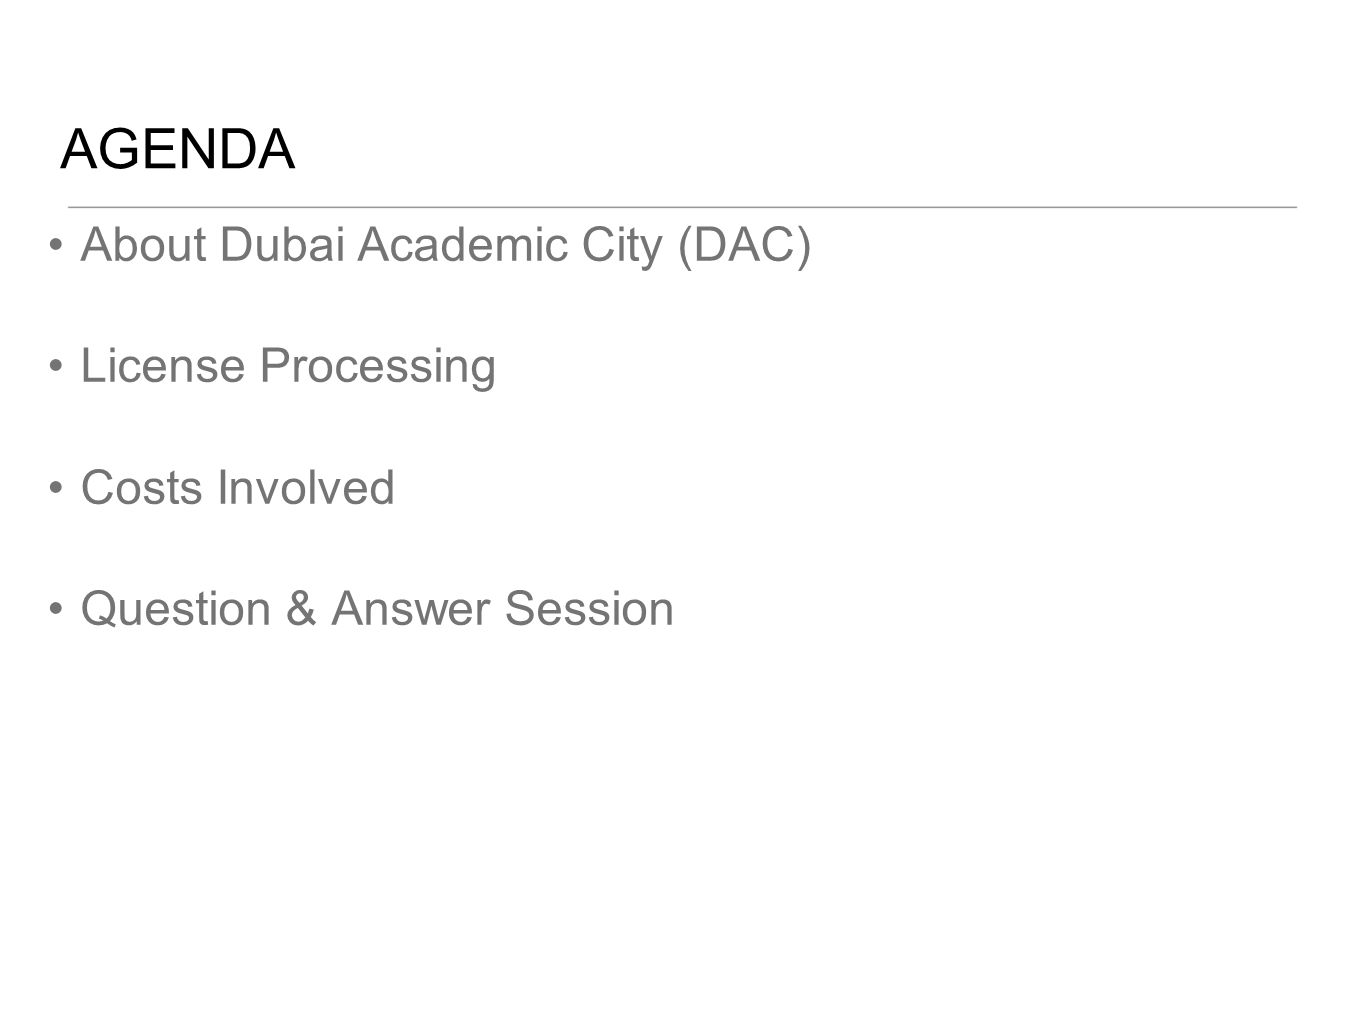 AGENDA About Dubai Academic City (DAC) License Processing Costs Involved Question & Answer Session